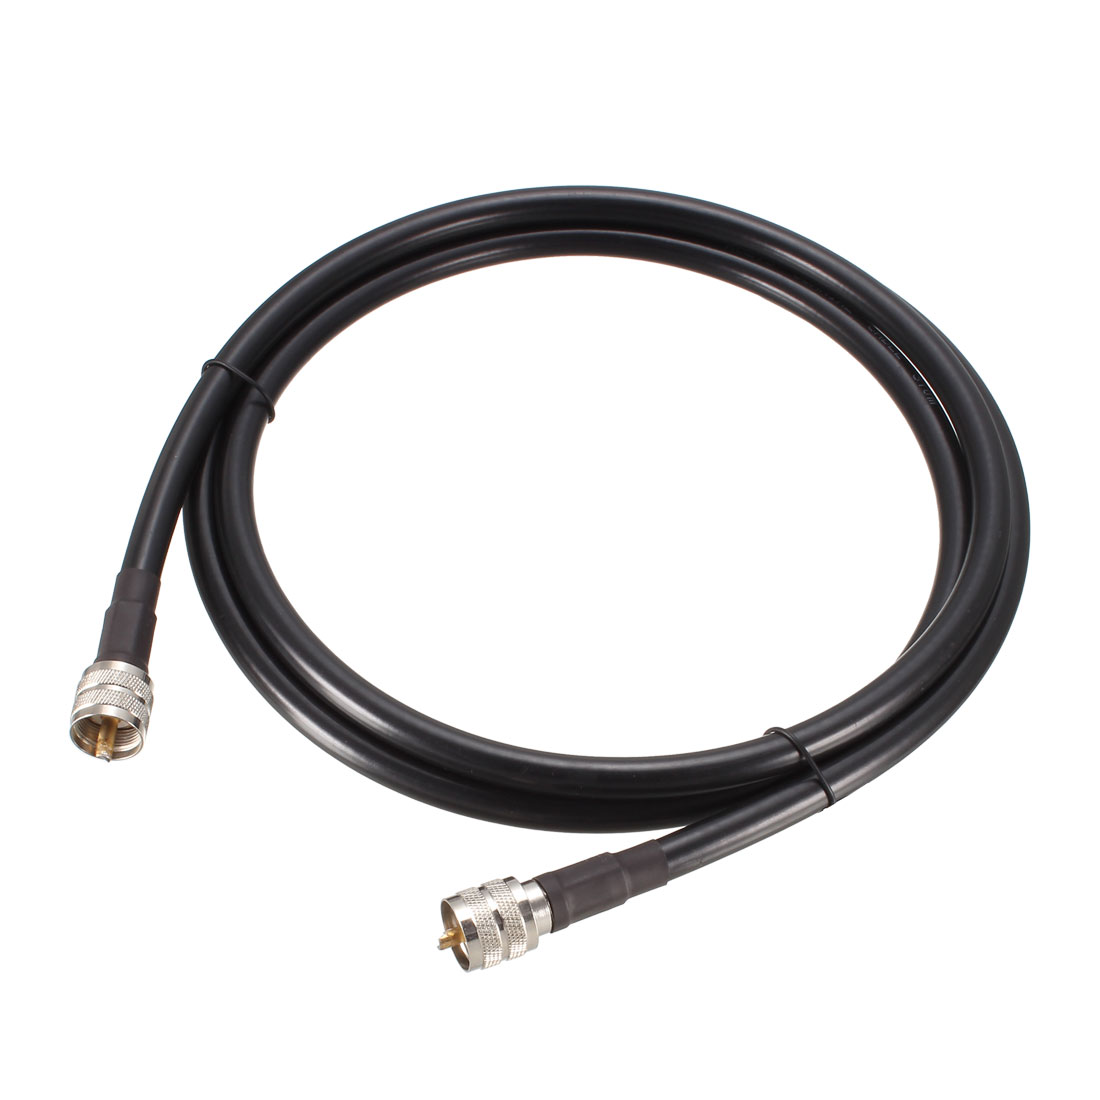 RG213 Coaxial Cable With Pl-259 Male to Pl-259 Male Connectors 6 ft